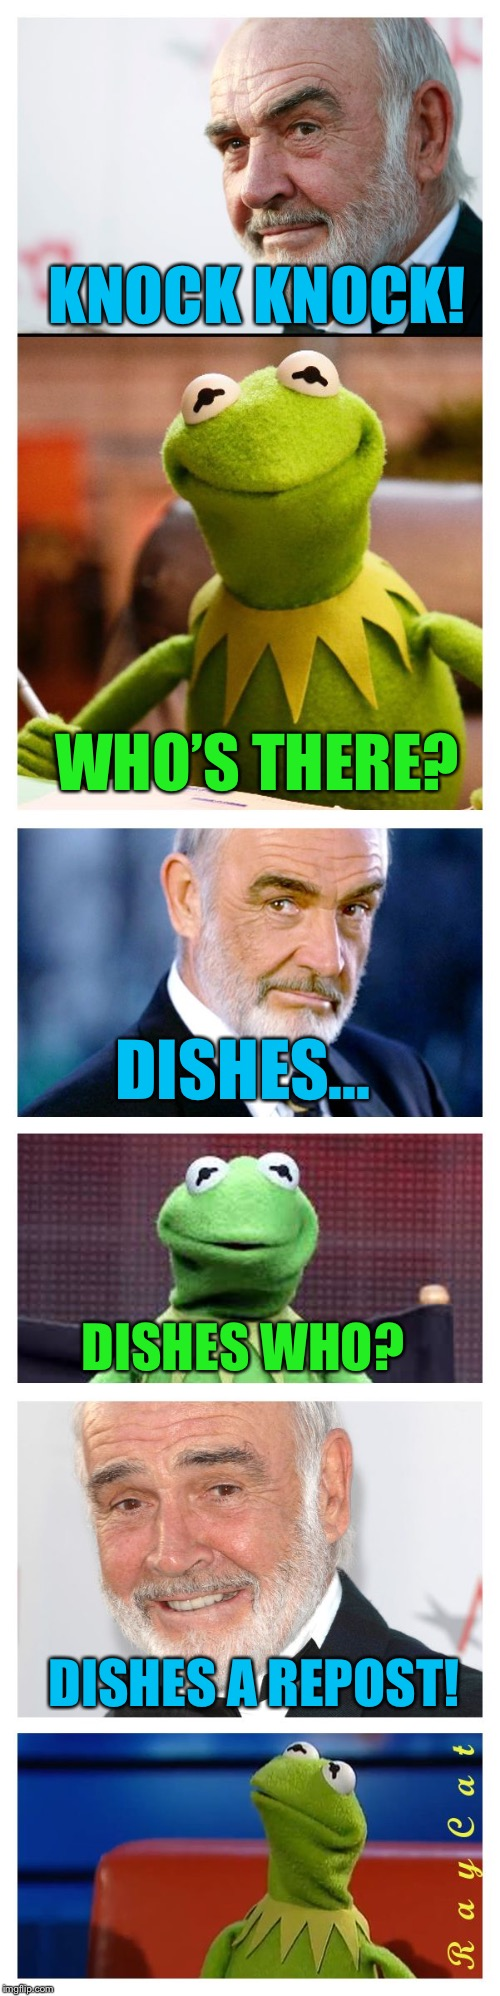 Sean and Kermit |  KNOCK KNOCK! WHO'S THERE? DISHES... DISHES WHO? DISHES A REPOST! | image tagged in sean and kermit,memes,sean connery vs kermit,sean connery  kermit,kermit the frog,sean connery | made w/ Imgflip meme maker